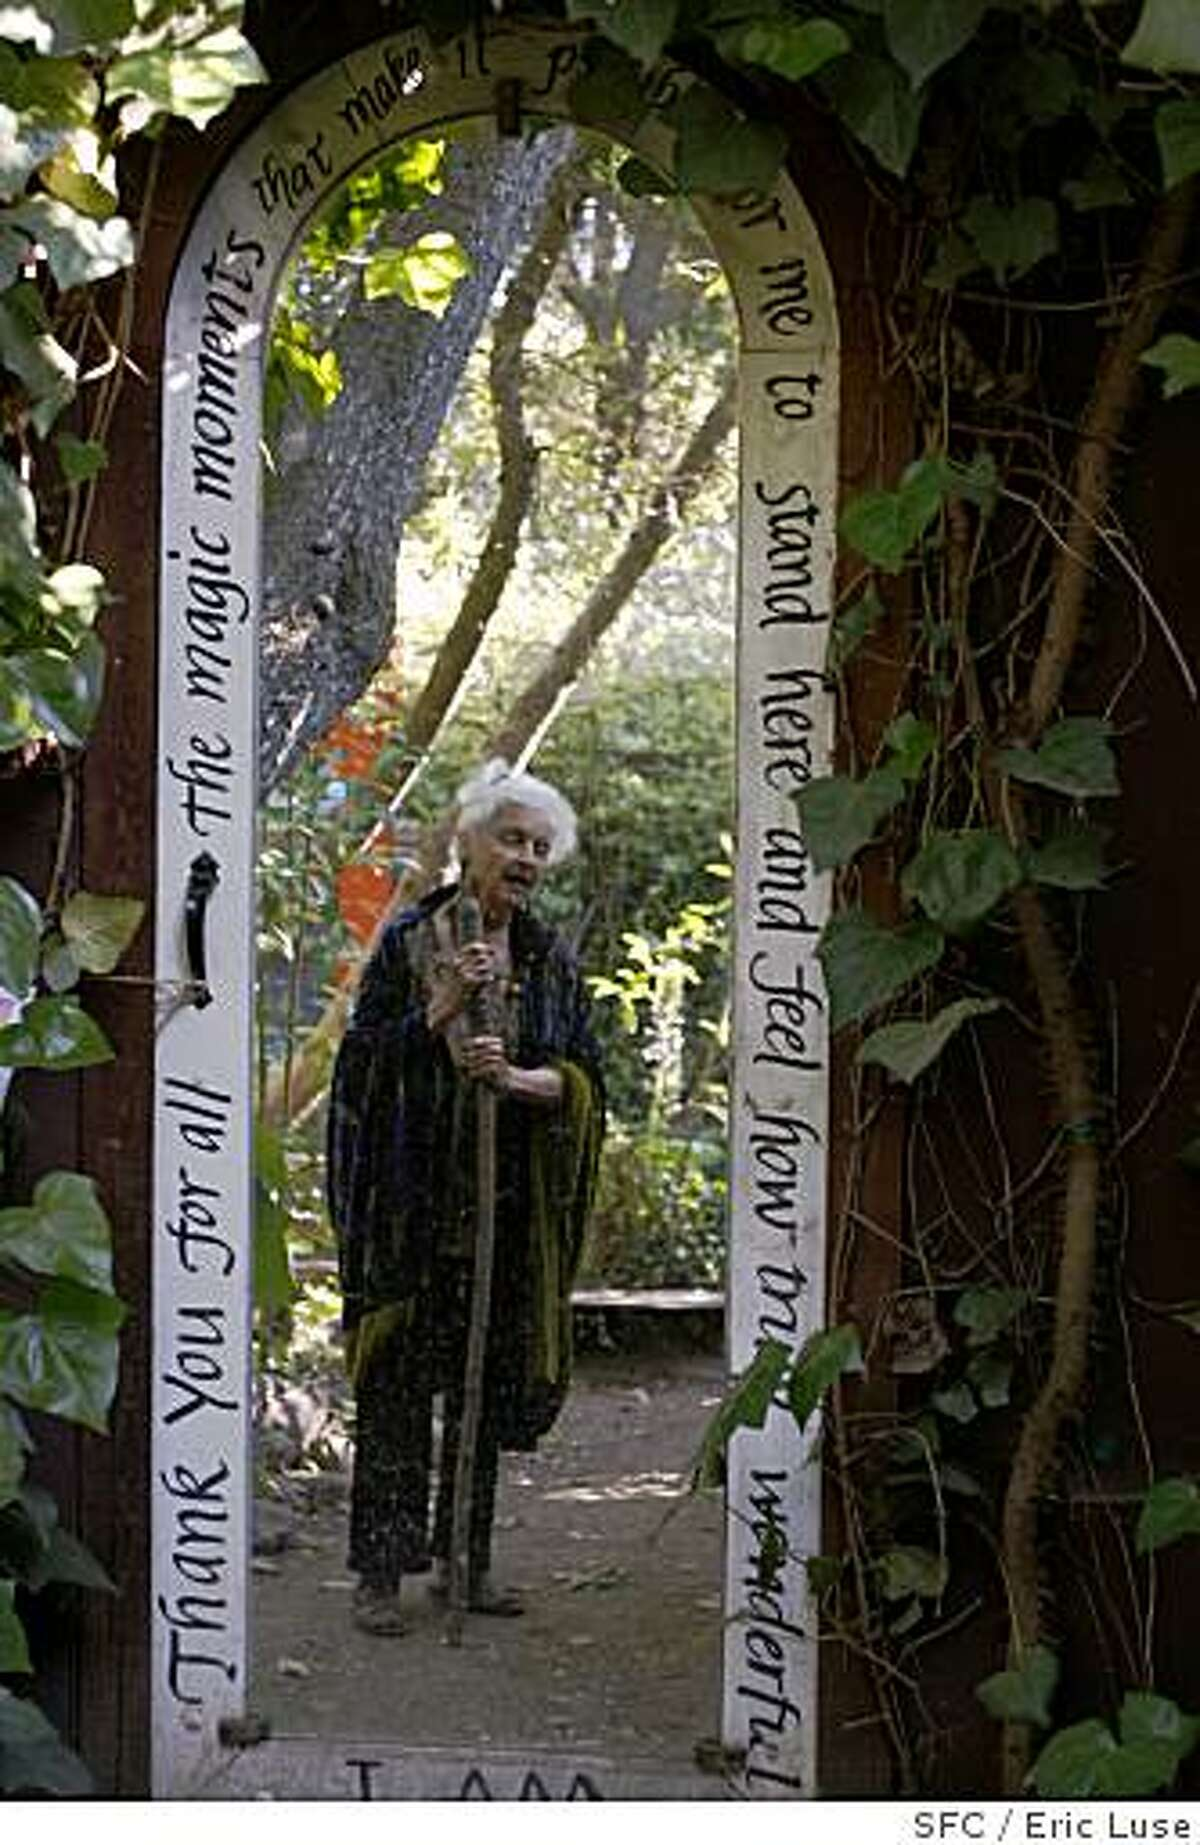 Betty Peck, reflected in a mirror in her garden. Chronicle photo by Eric Luse